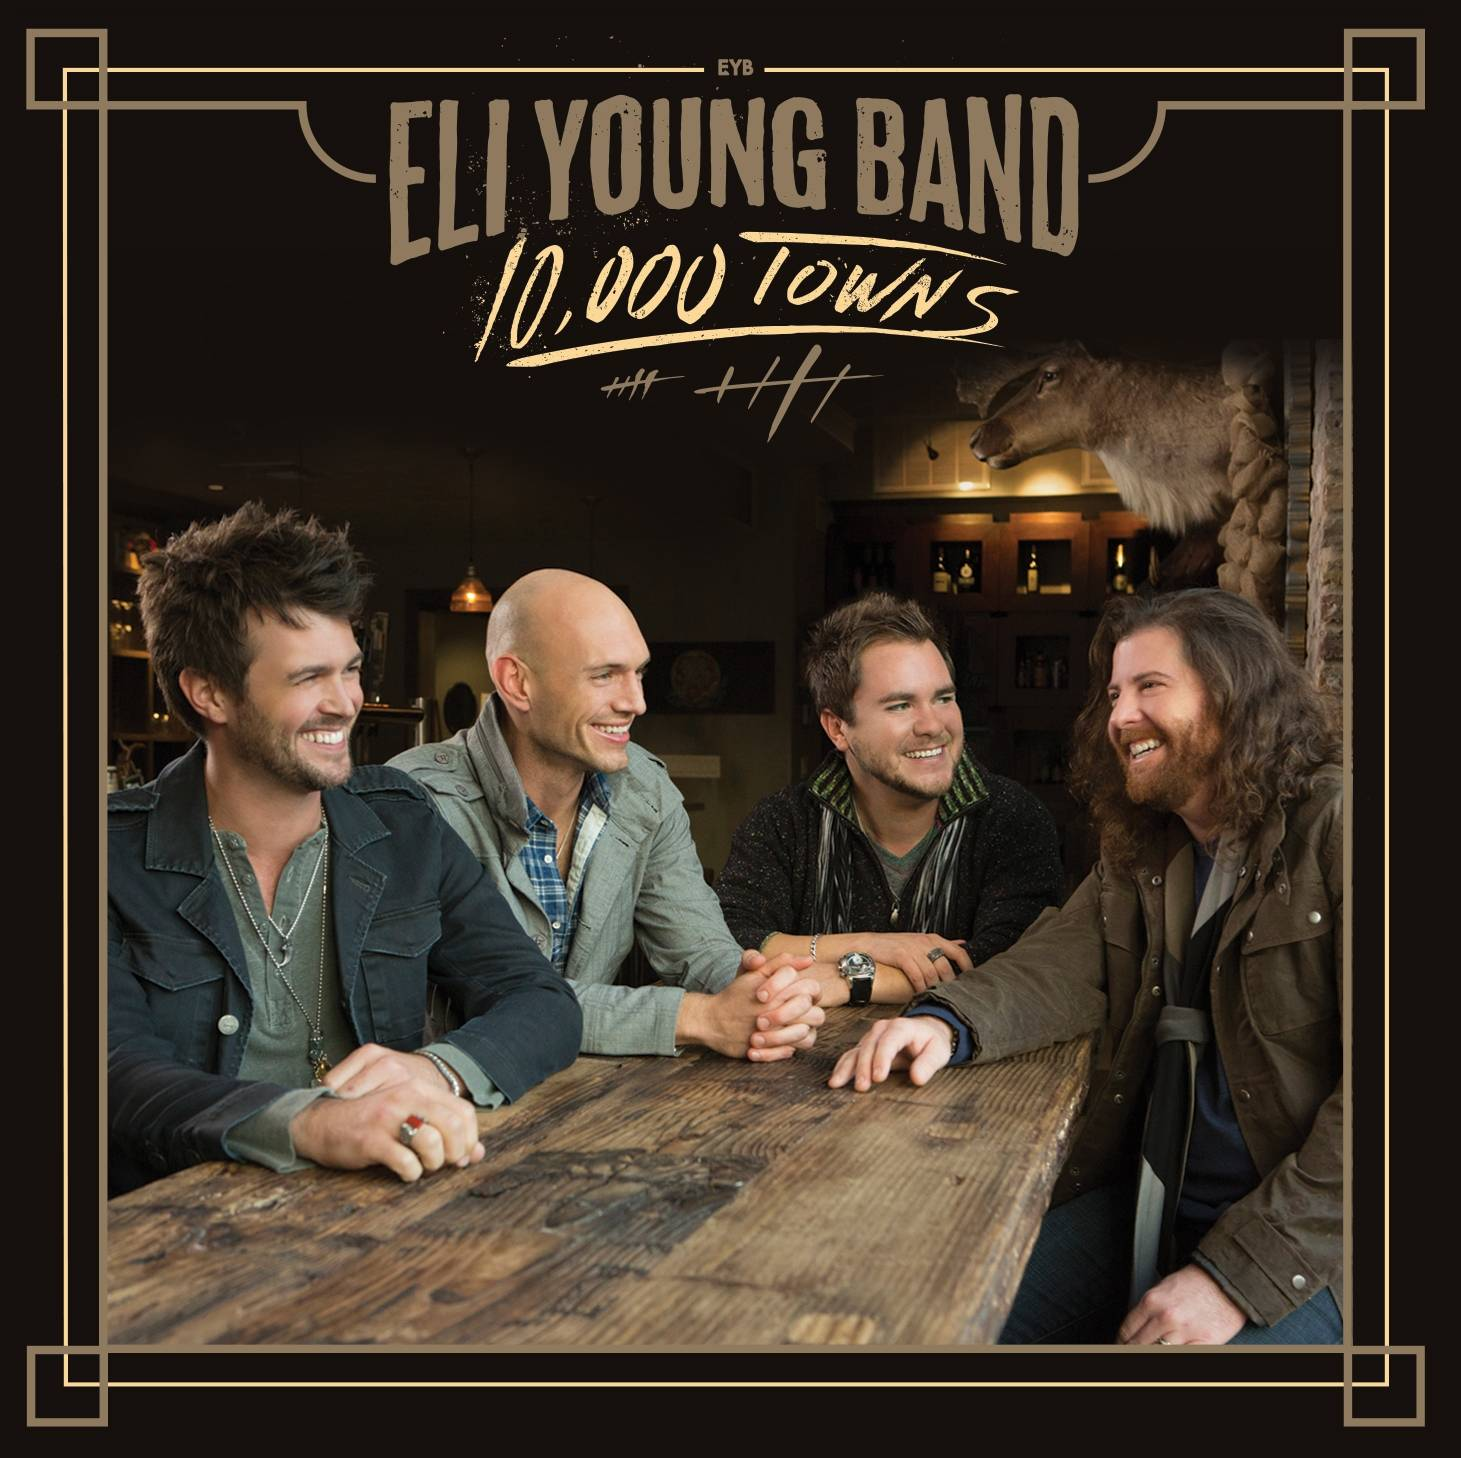 """10,000 Towns"" is the latest release by The Eli Young Band."